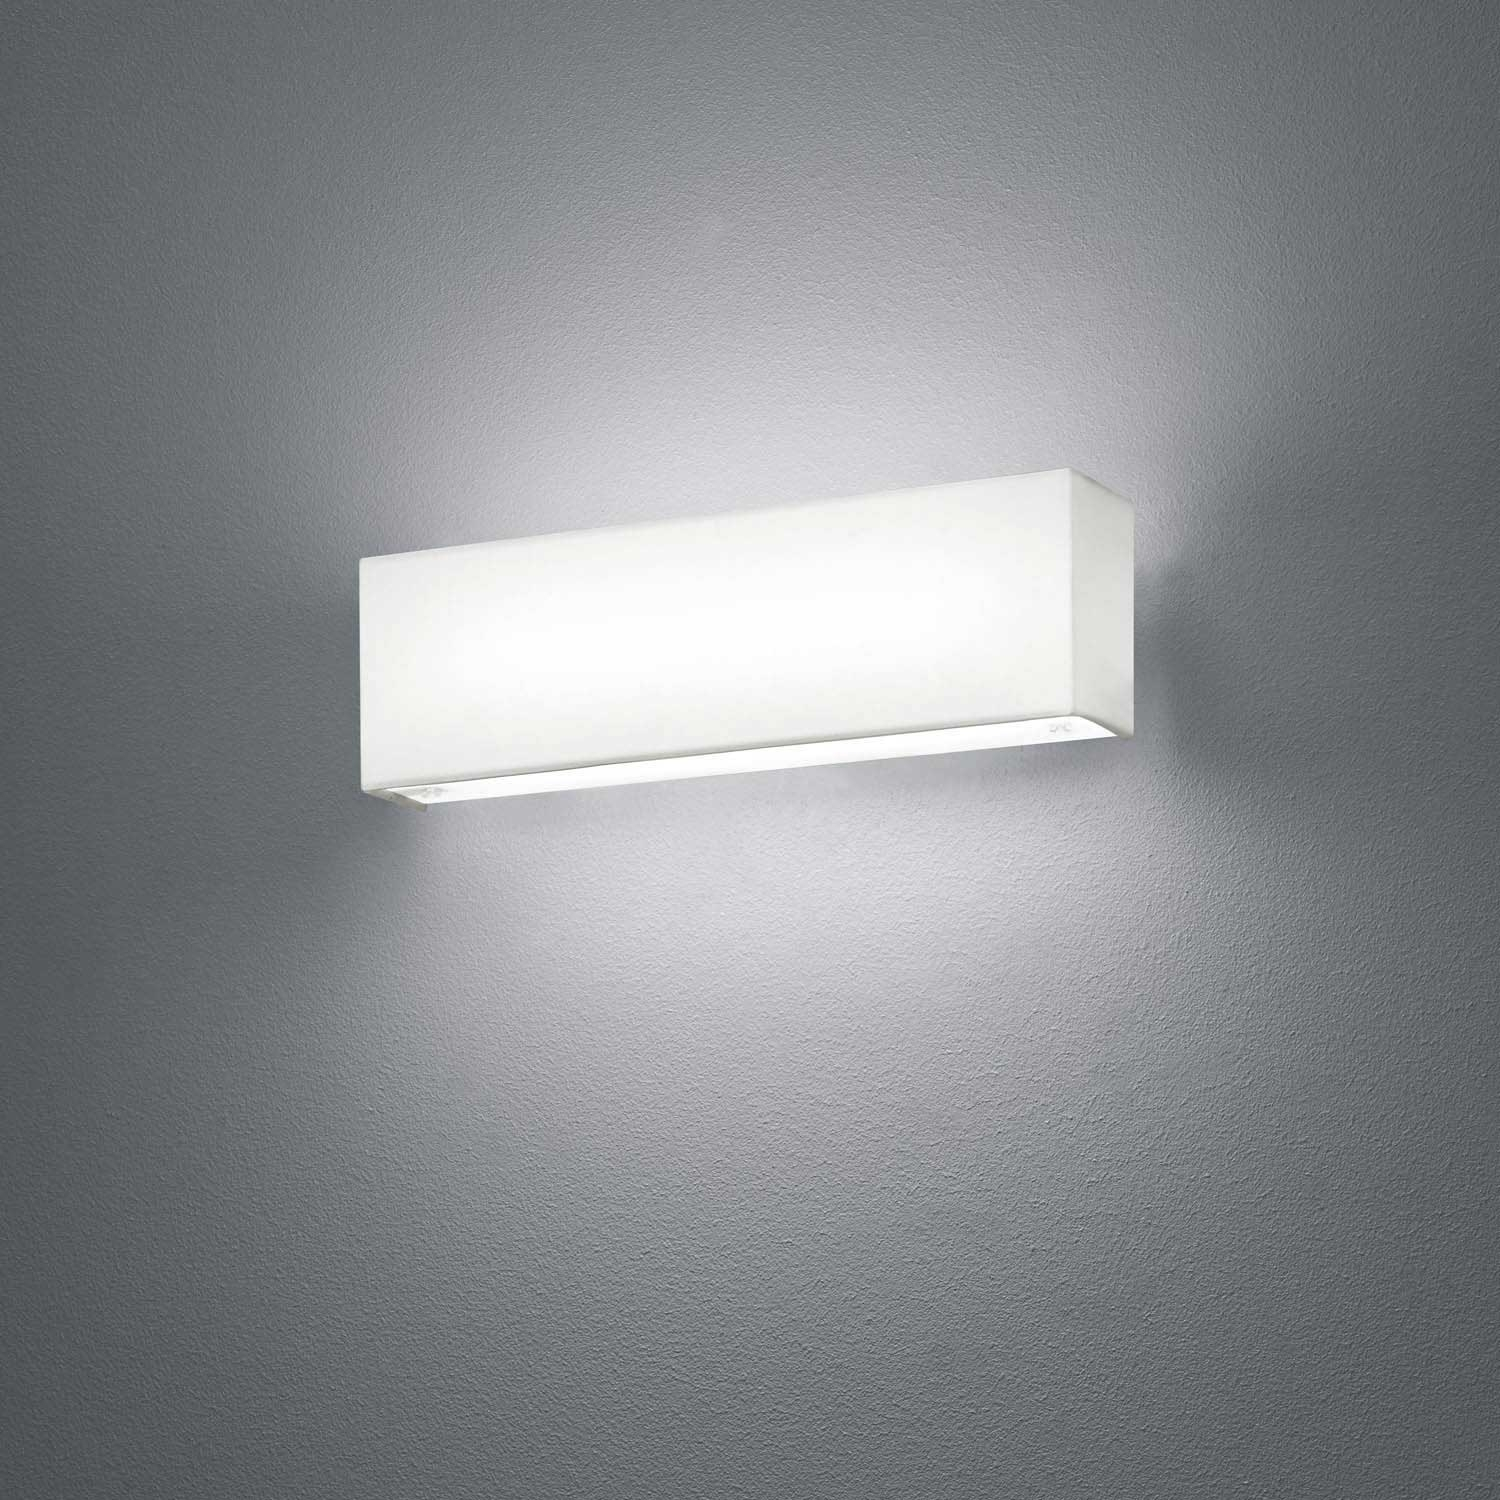 Aplique de pared led carlo 6w blanco for Apliques para escaleras de comunidad